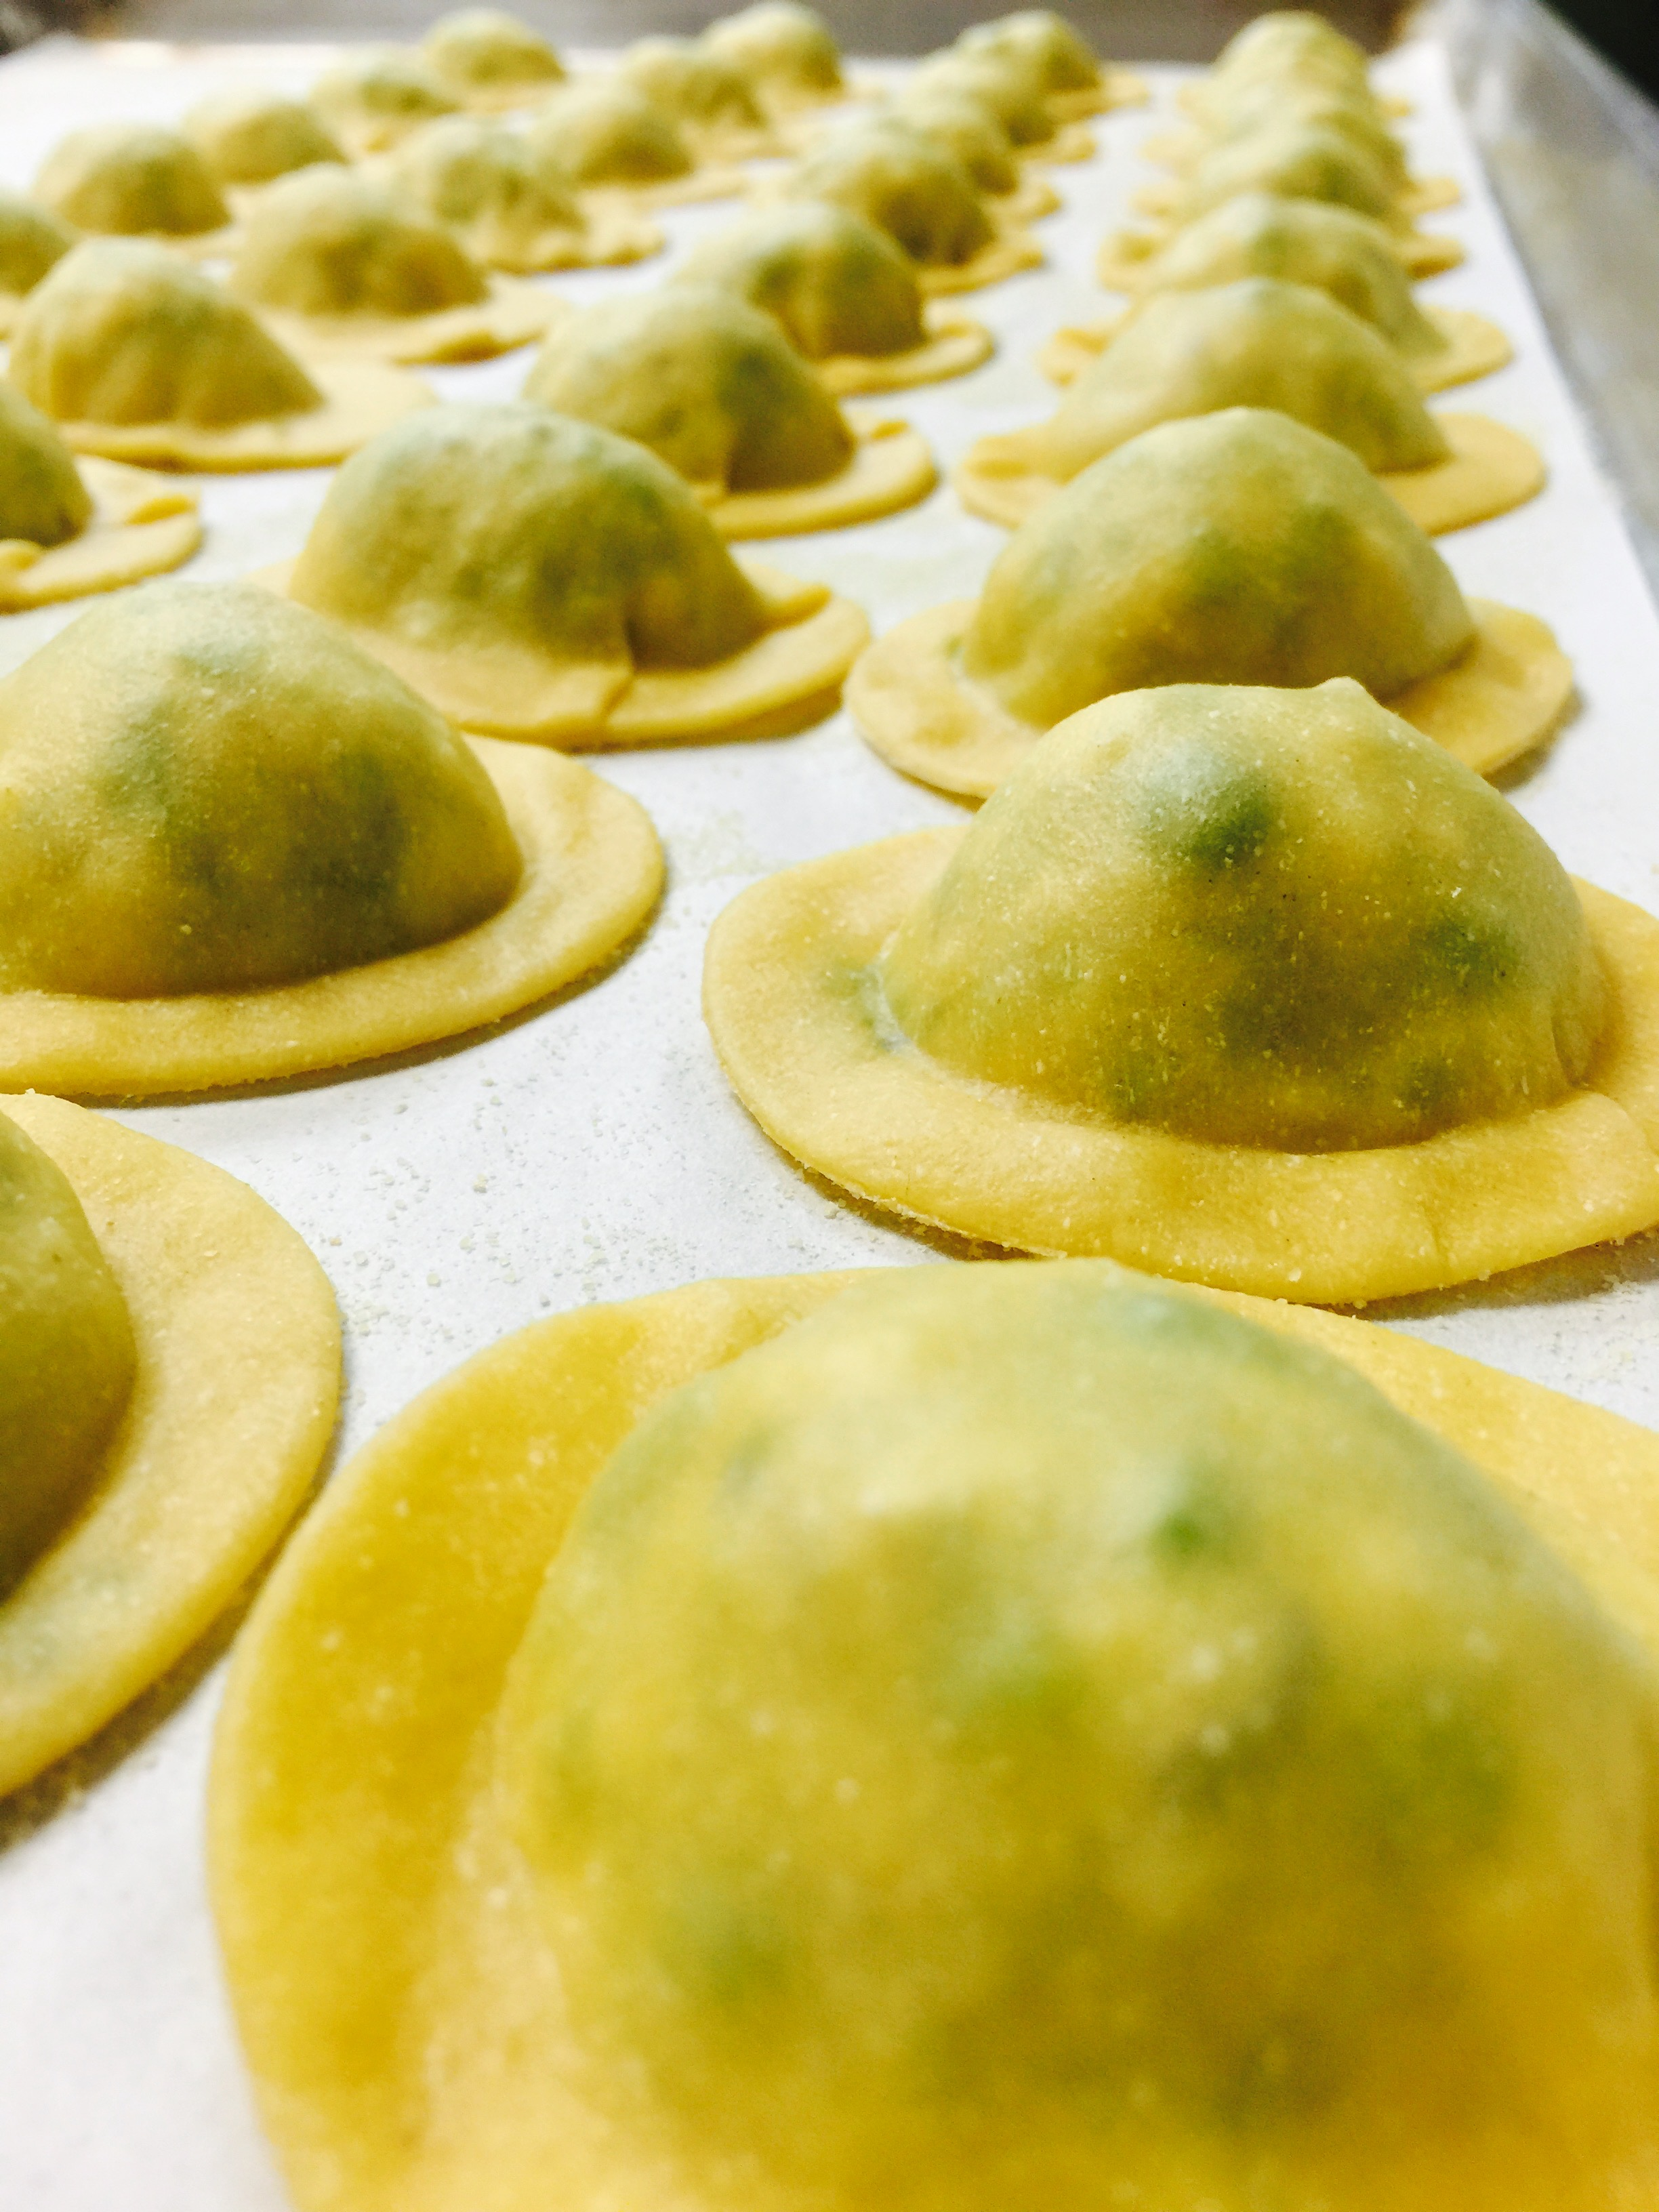 Our ravioli are the perfect little pocket to hold a mixture of sautéed wild mushrooms, shallots, porcini powder, ricotta and herbs.